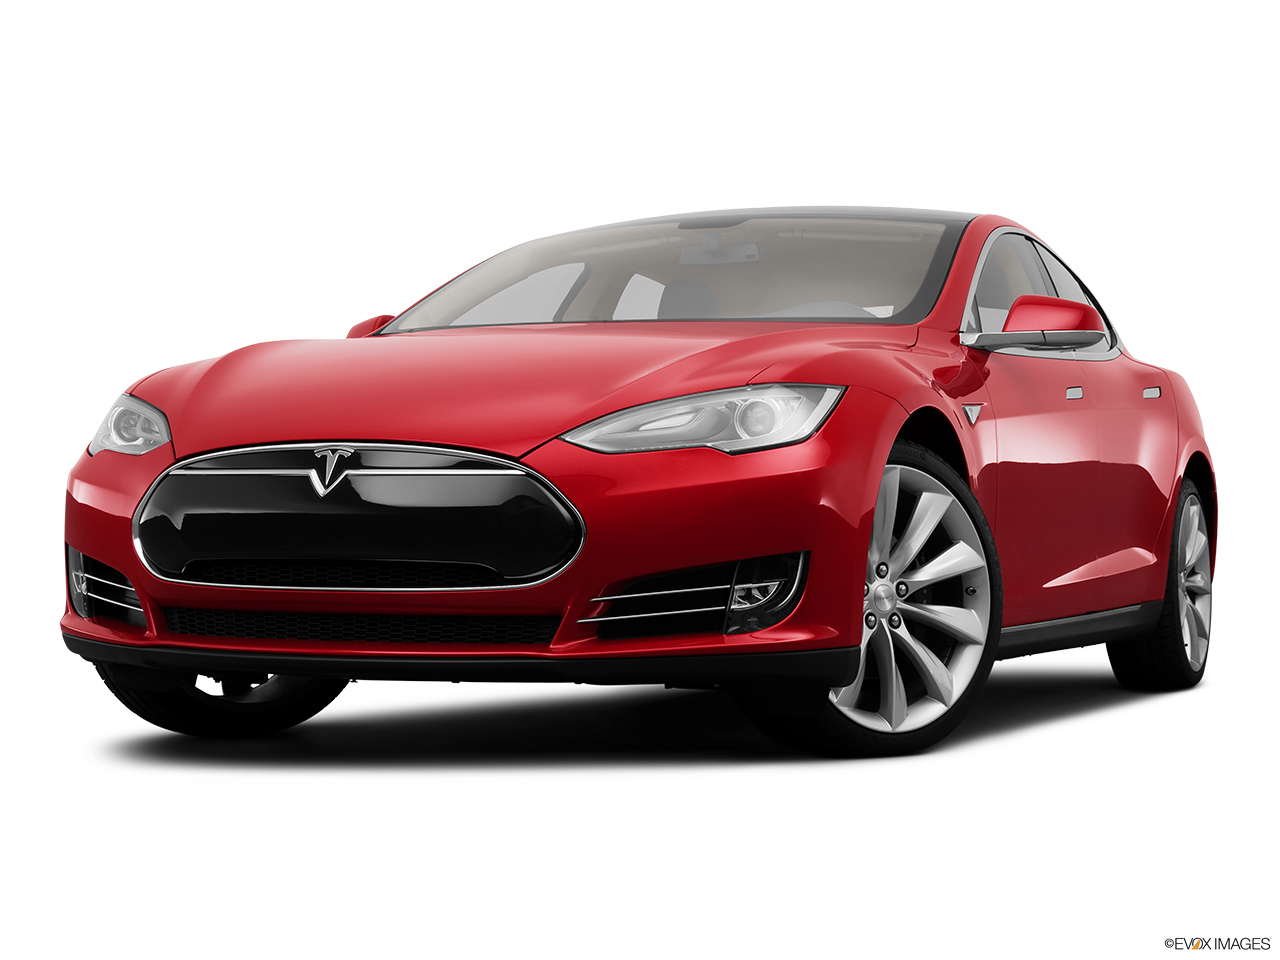 2015 Tesla Model S Rwd 60 Kwh Battery Ltd Avail Sedan